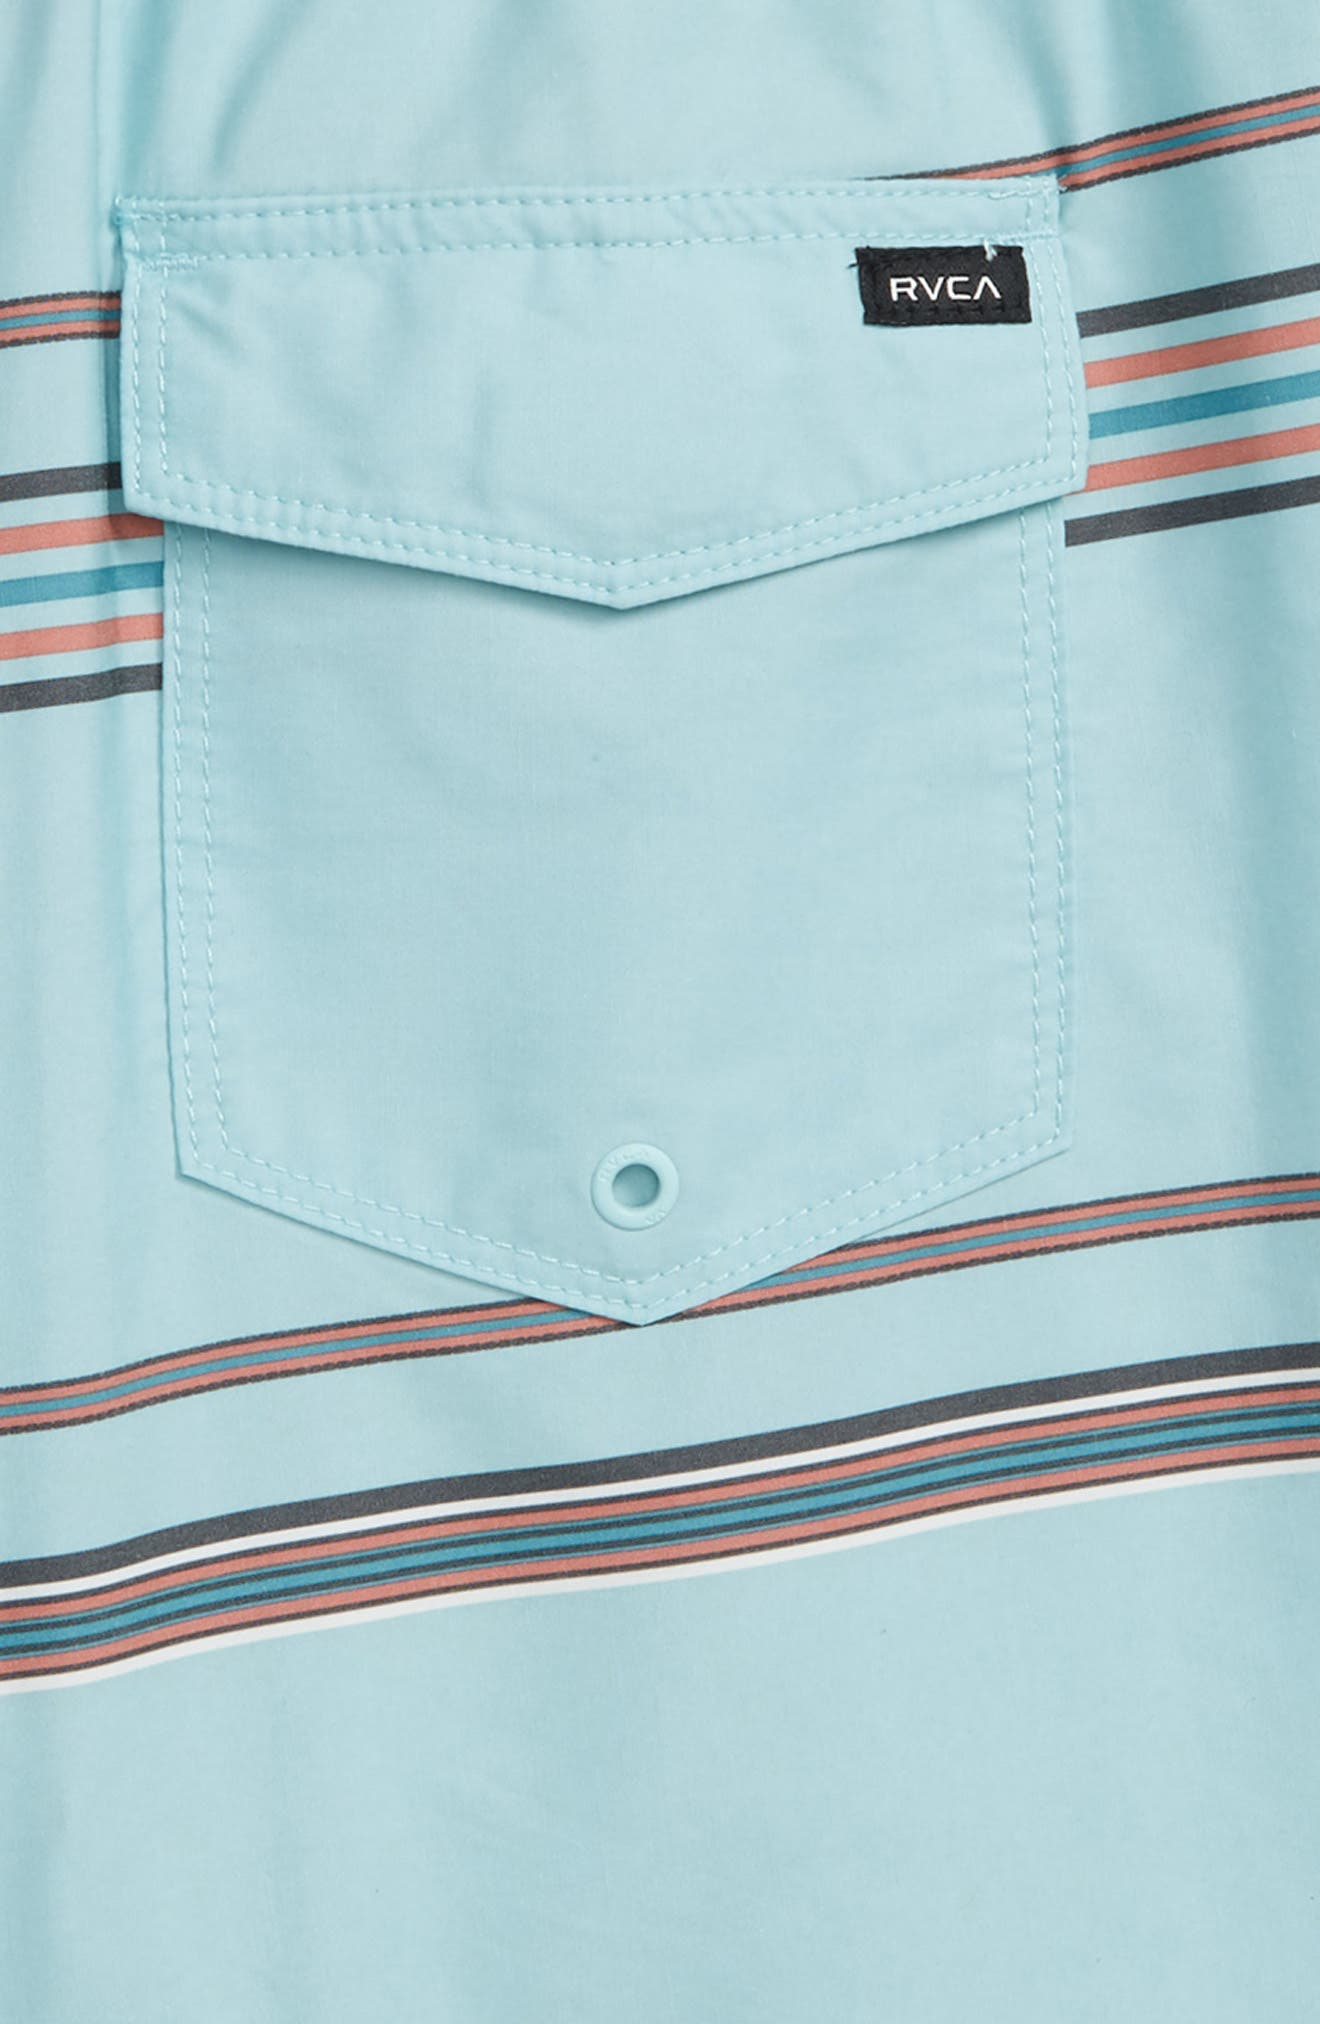 RVCA,                             Shattered Board Shorts,                             Alternate thumbnail 3, color,                             ETHER BLUE